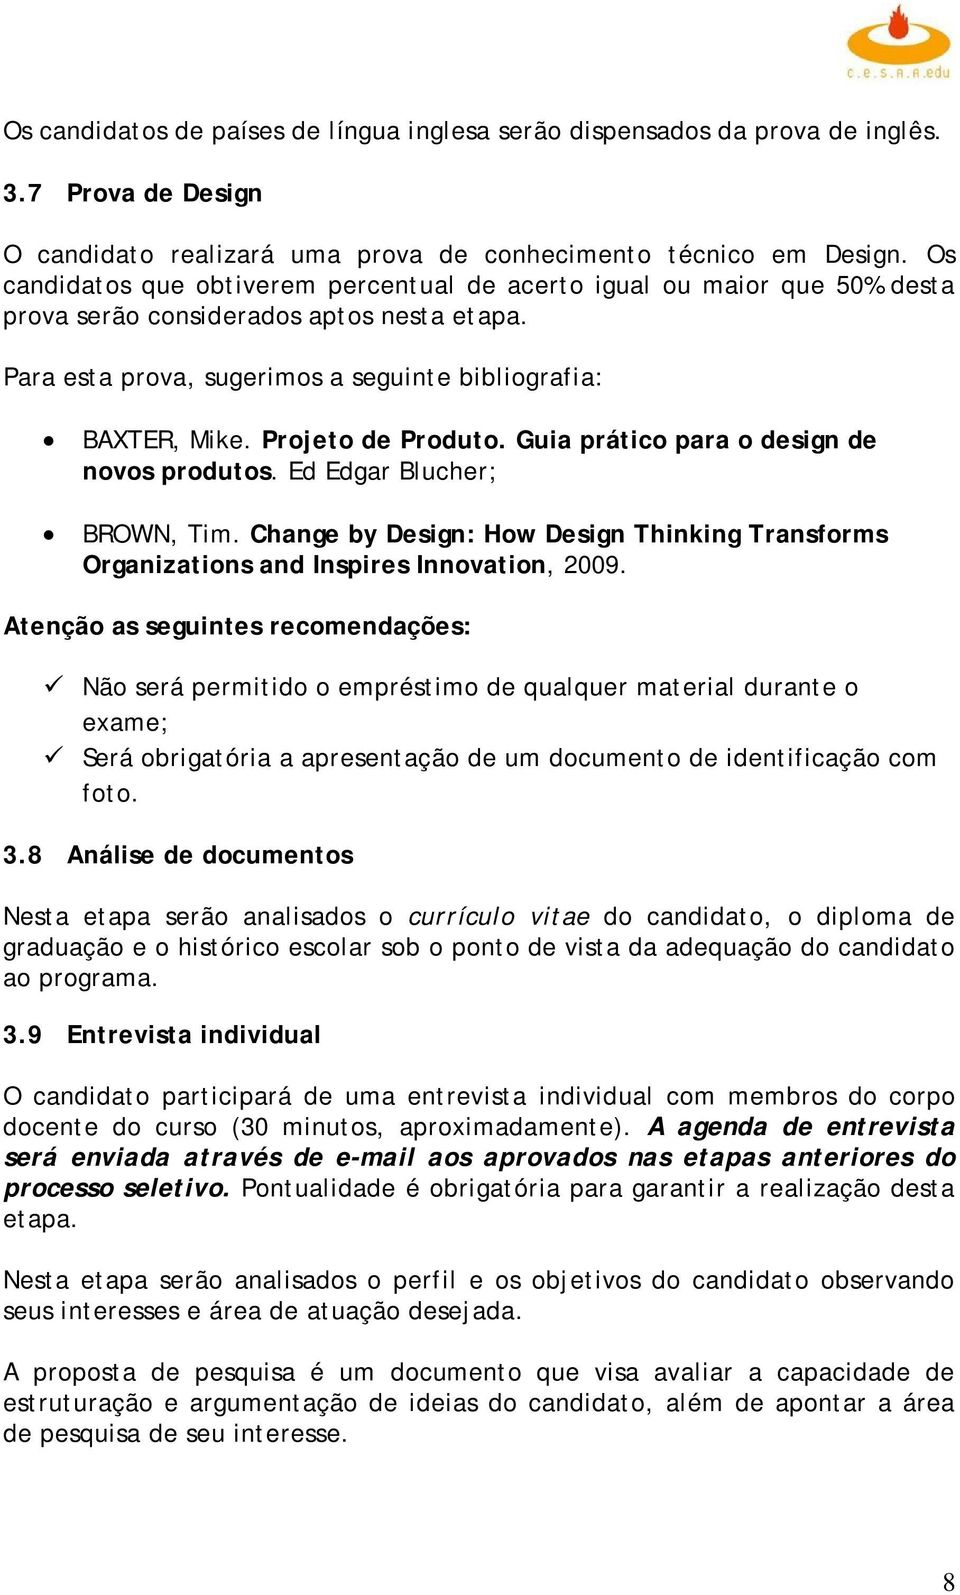 Projeto de Produto. Guia prático para o design de novos produtos. Ed Edgar Blucher; BROWN, Tim. Change by Design: How Design Thinking Transforms Organizations and Inspires Innovation, 2009.